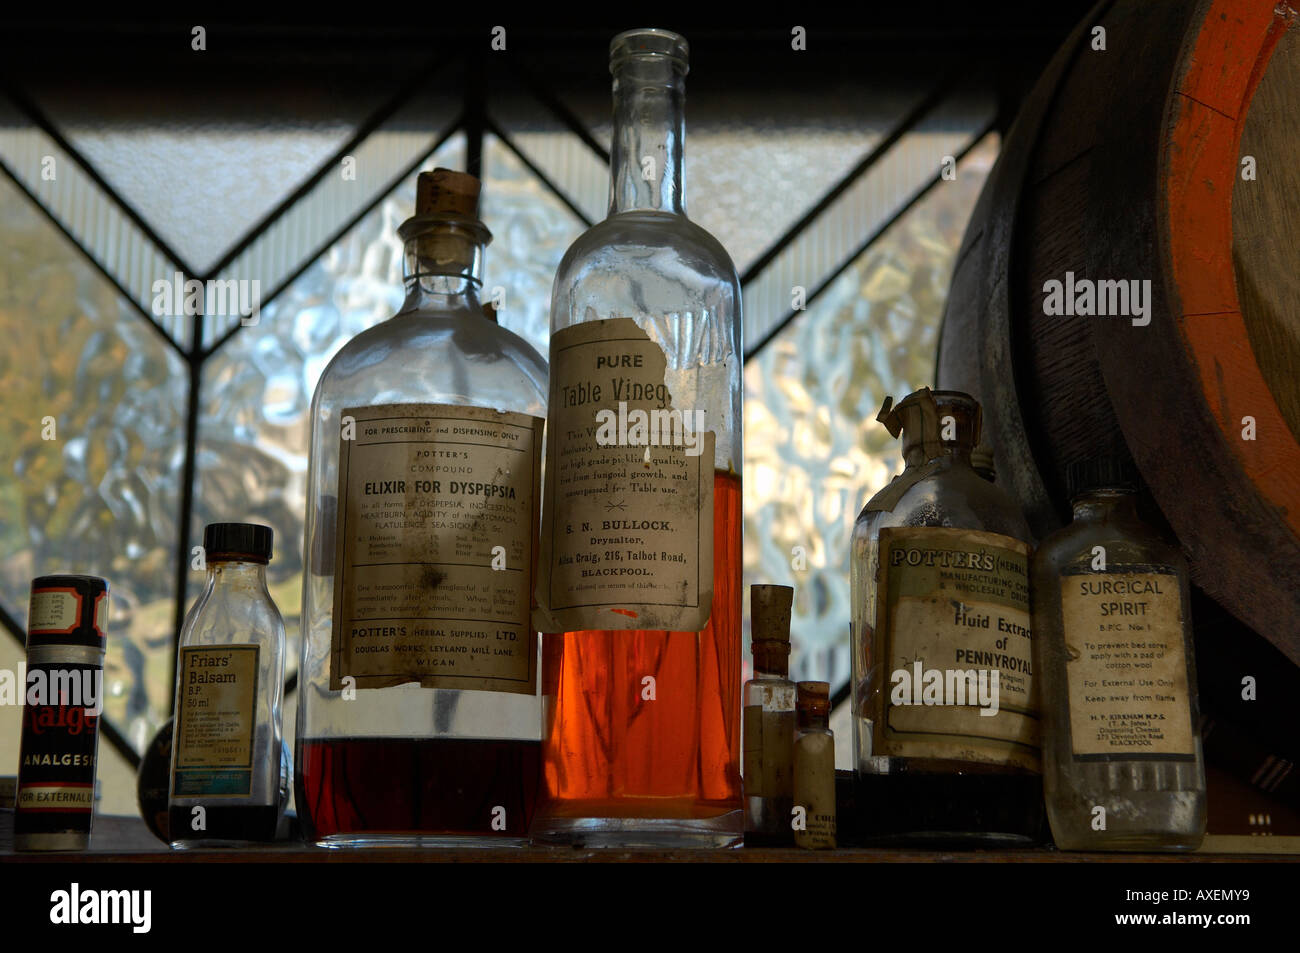 Old apothecary bottles on a shelf. Stock Photo